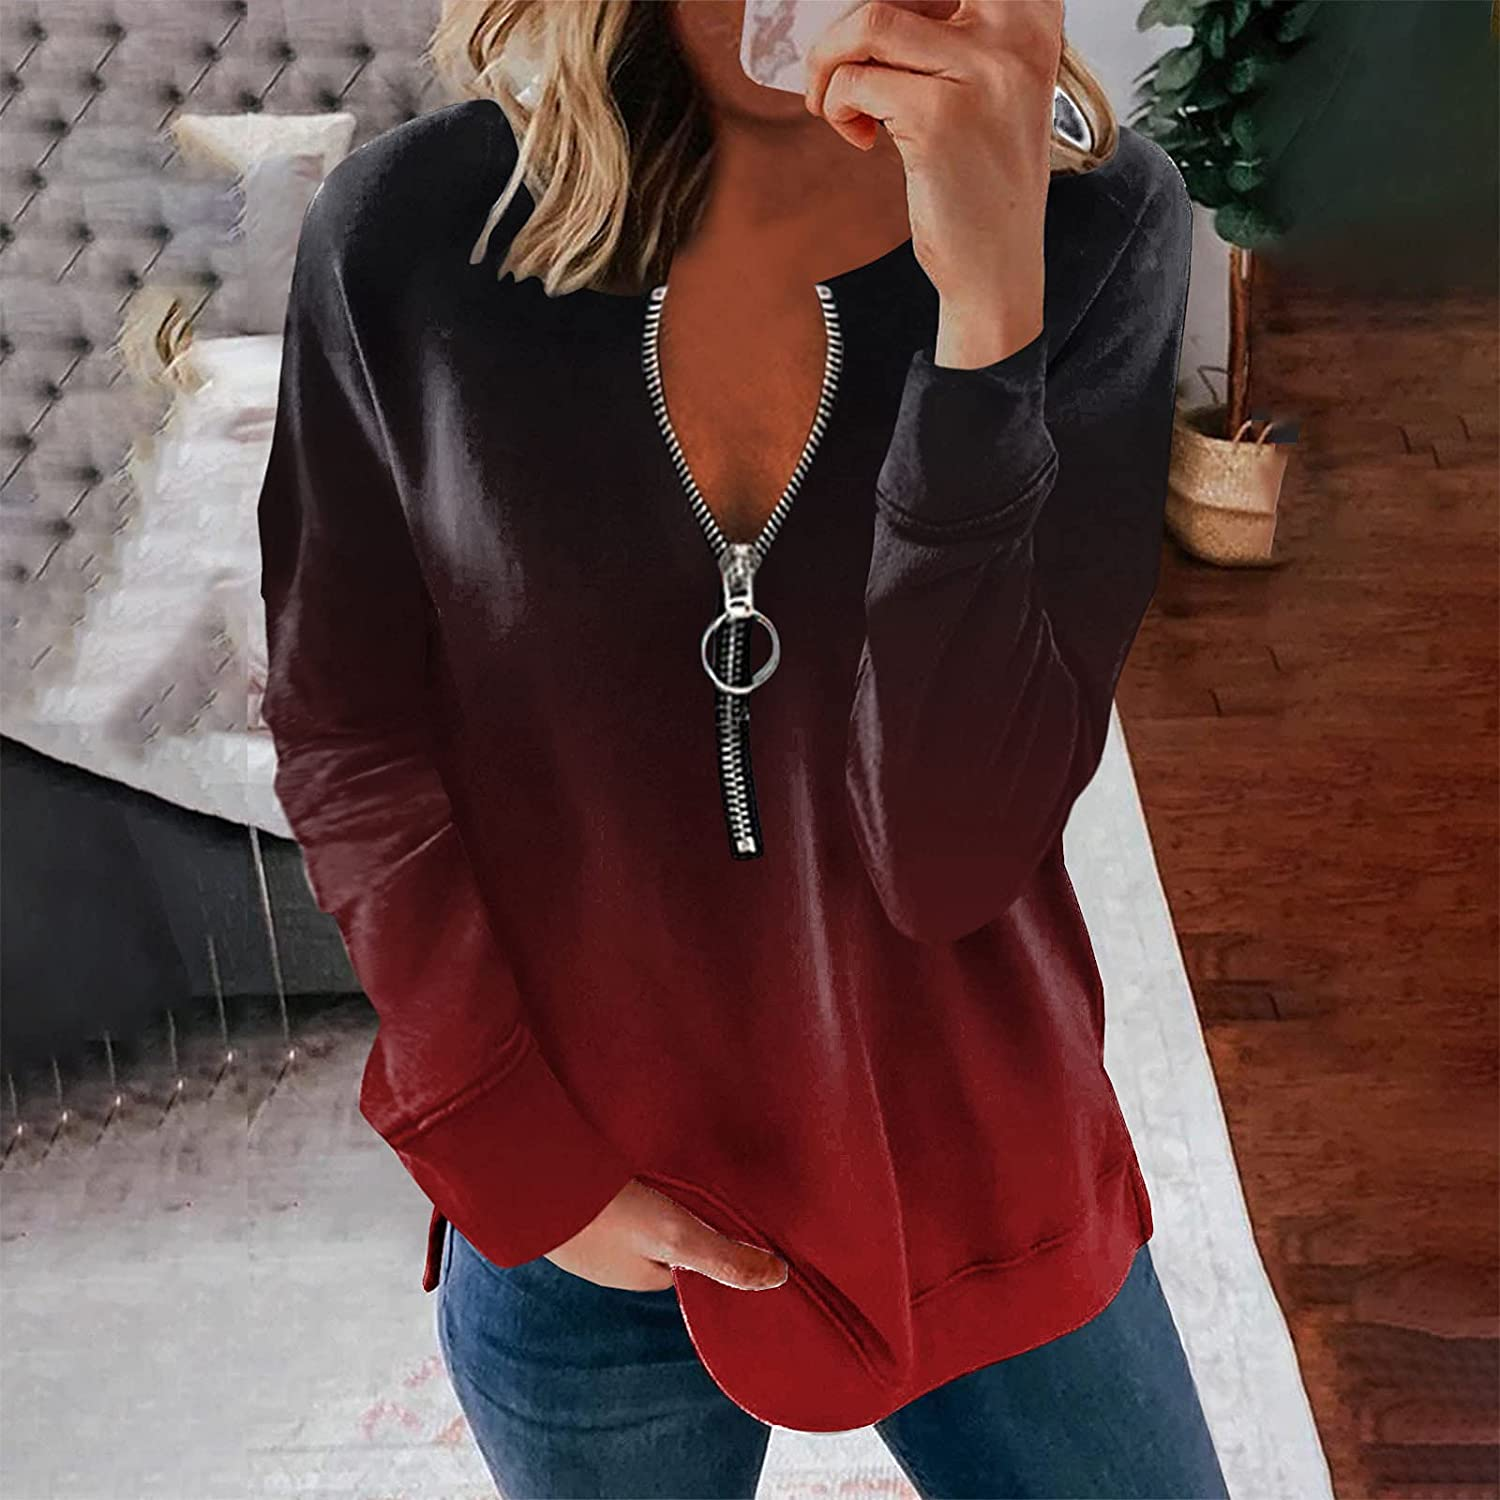 Long Sleeve Blouse for Women, Zip Up Gradient Casual V Neck Sweatshirts Slim Fit Pullover Tops Tunic Shirts